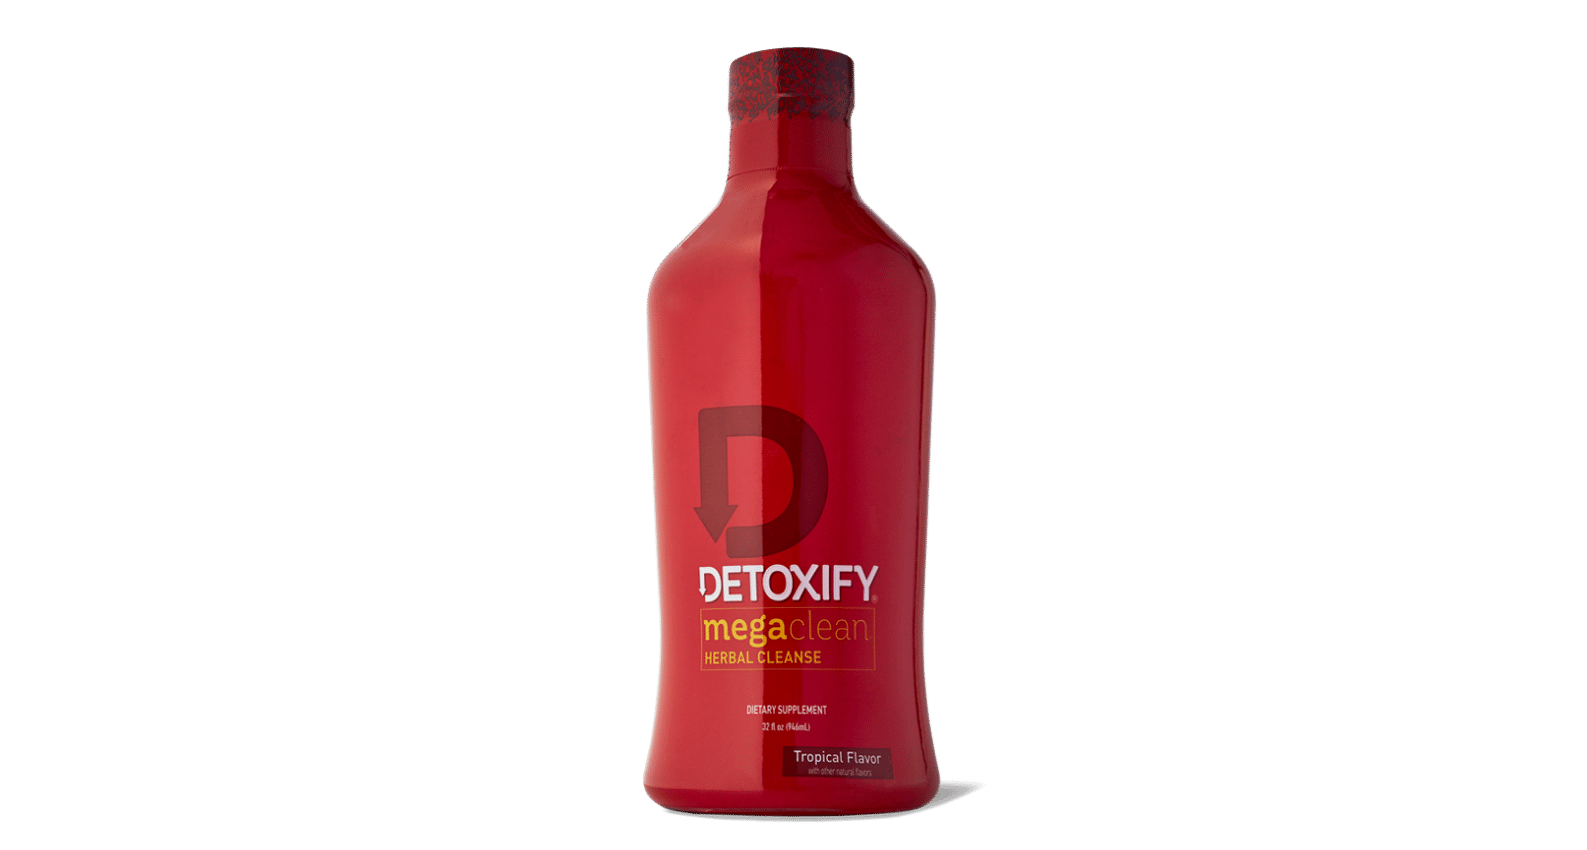 Detoxify Mega Clean contains added vitamins and minerals to replenish those you'll lose during your cleanse. It's no wonder Mega Clean is a customer favorite.